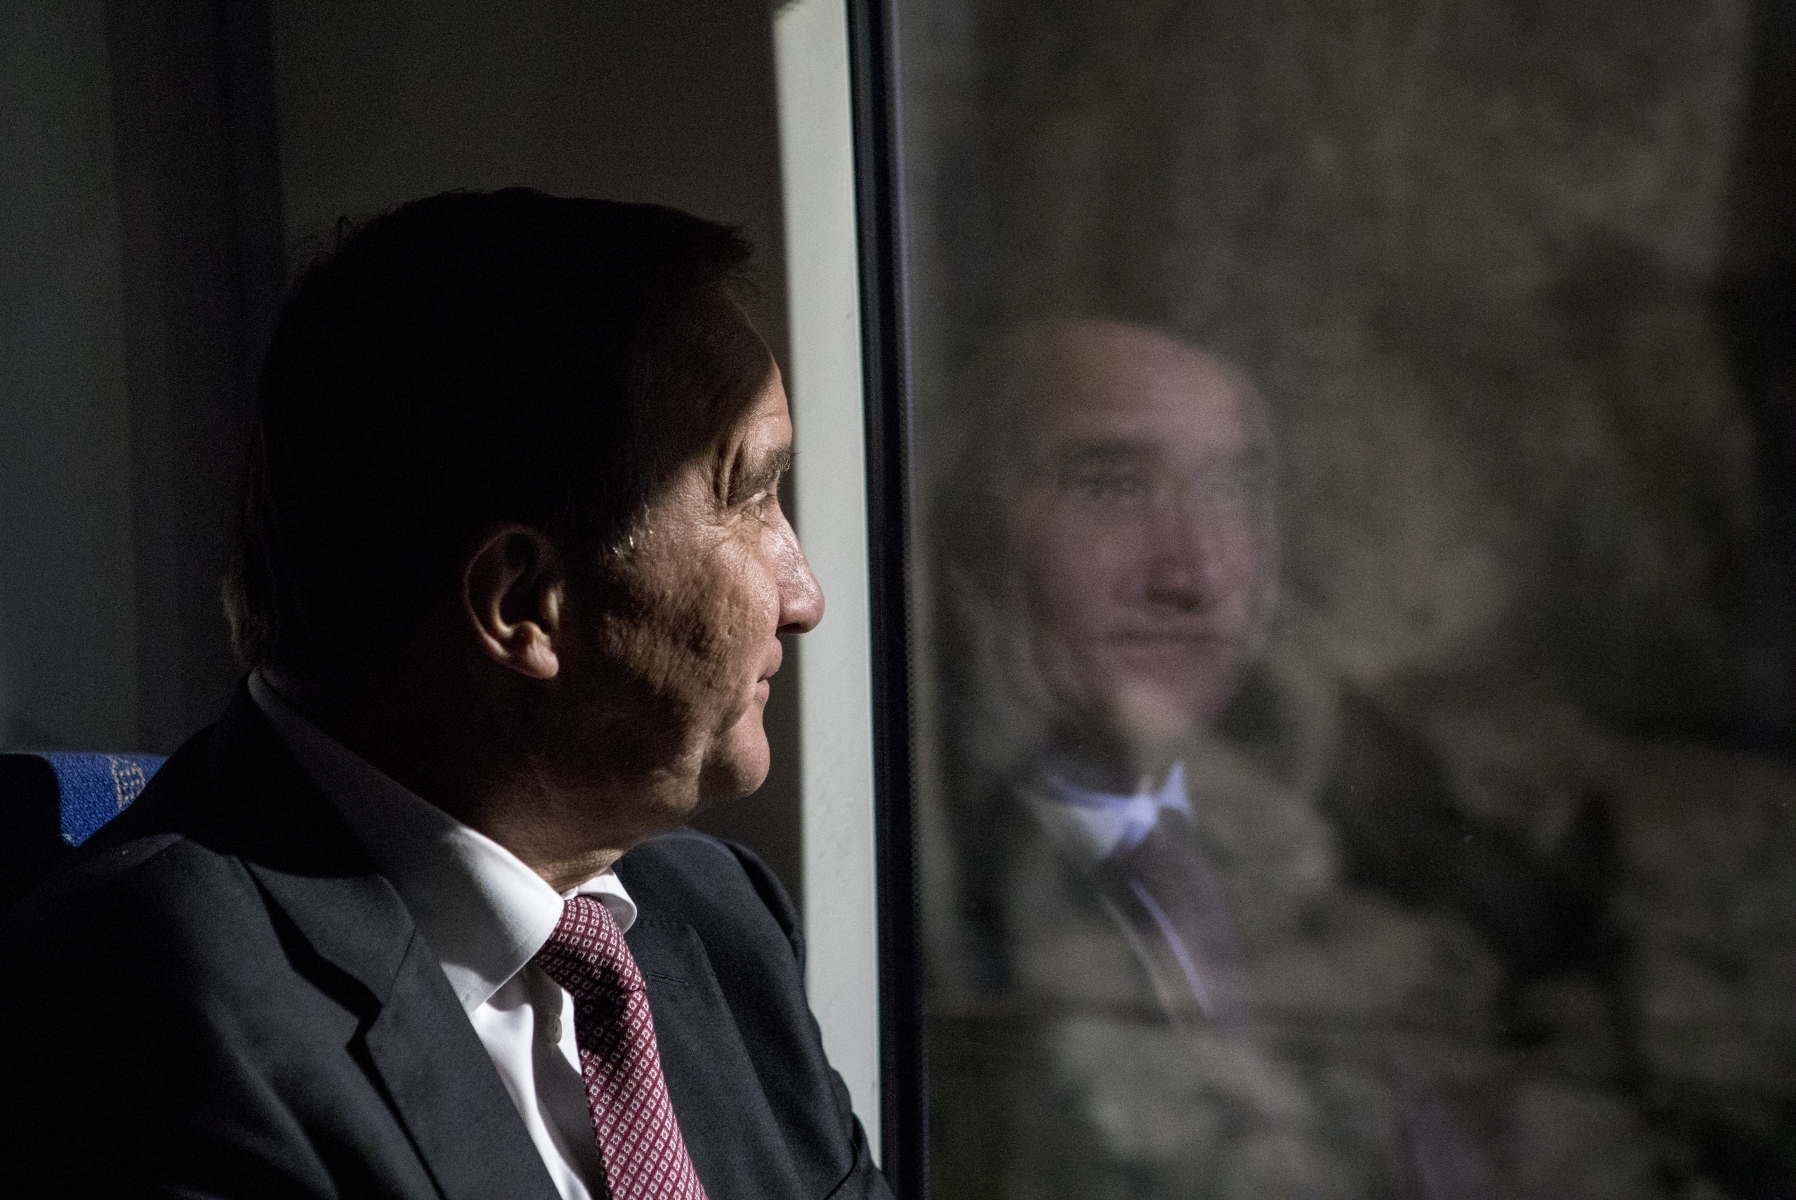 Swedish Prime Minister Stefan Löfven on a train in 2017